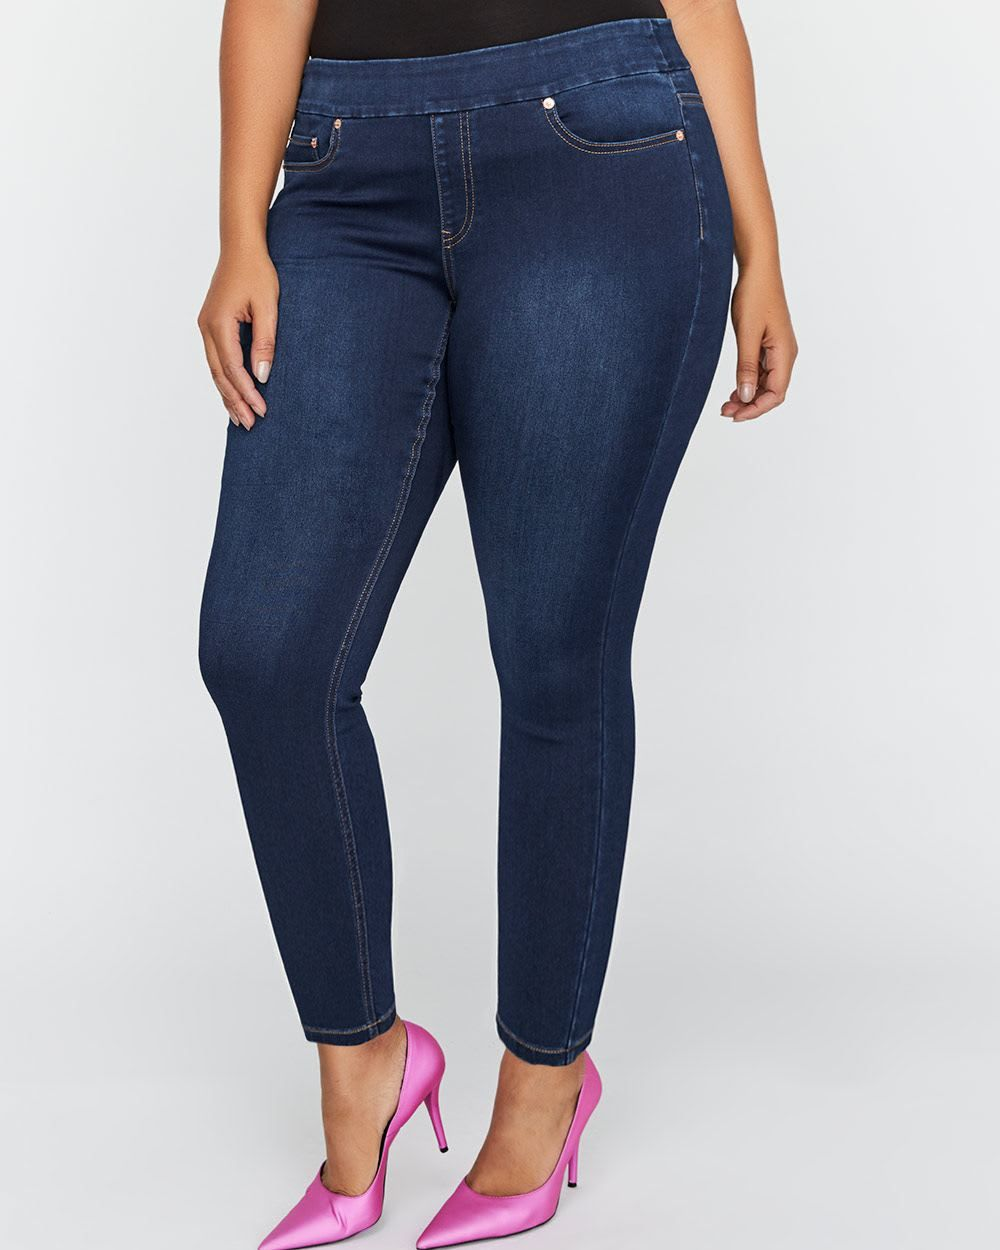 The tall pullon jegging from love u legend in a dark wash features